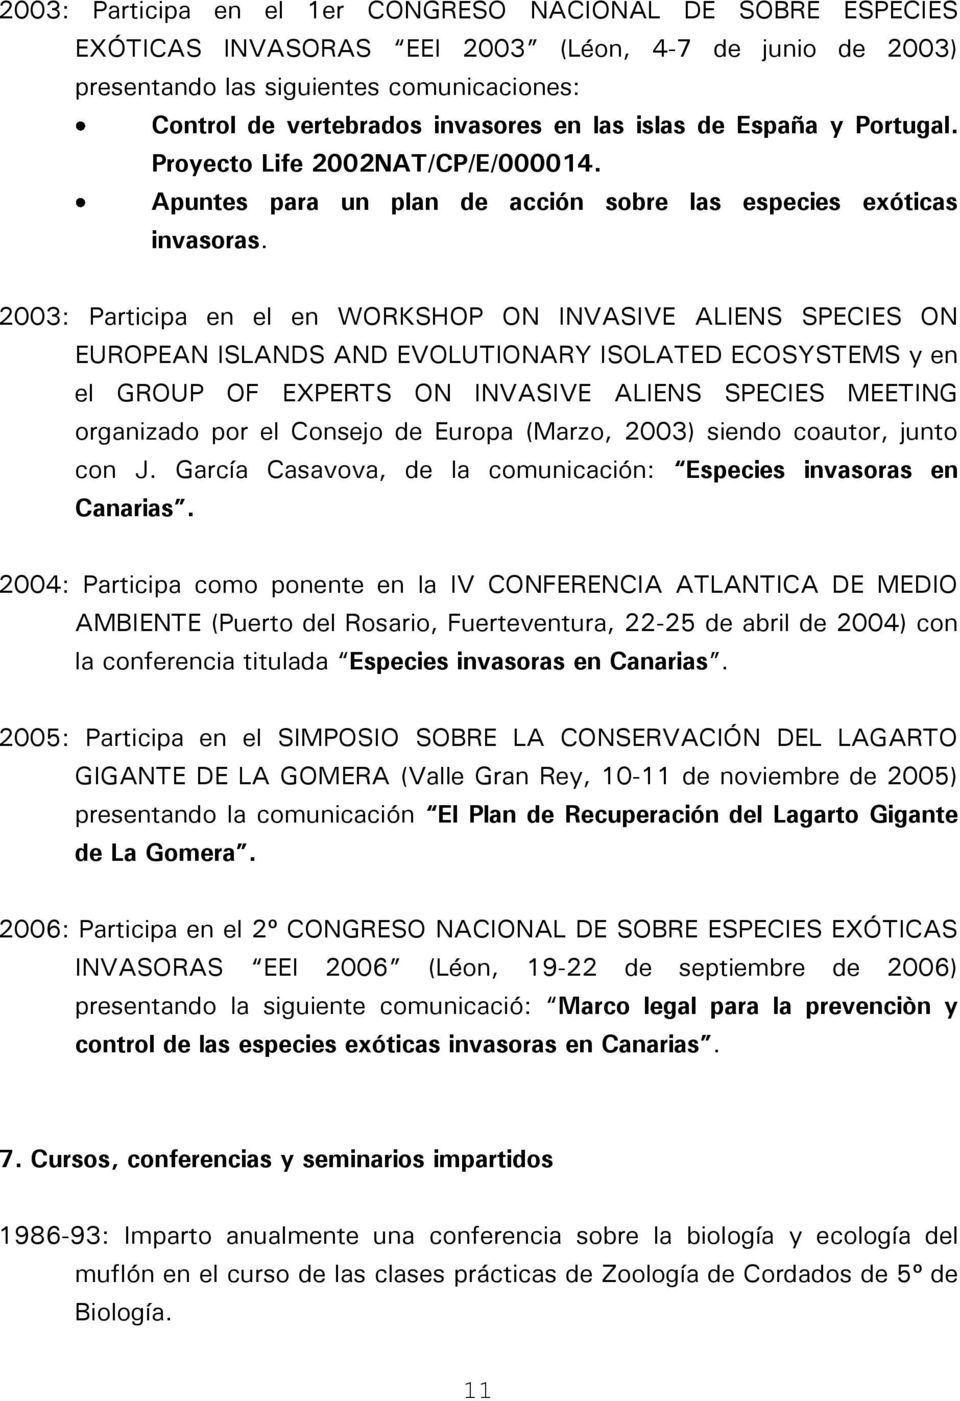 2003: Participa en el en WORKSHOP ON INVASIVE ALIENS SPECIES ON EUROPEAN ISLANDS AND EVOLUTIONARY ISOLATED ECOSYSTEMS y en el GROUP OF EXPERTS ON INVASIVE ALIENS SPECIES MEETING organizado por el